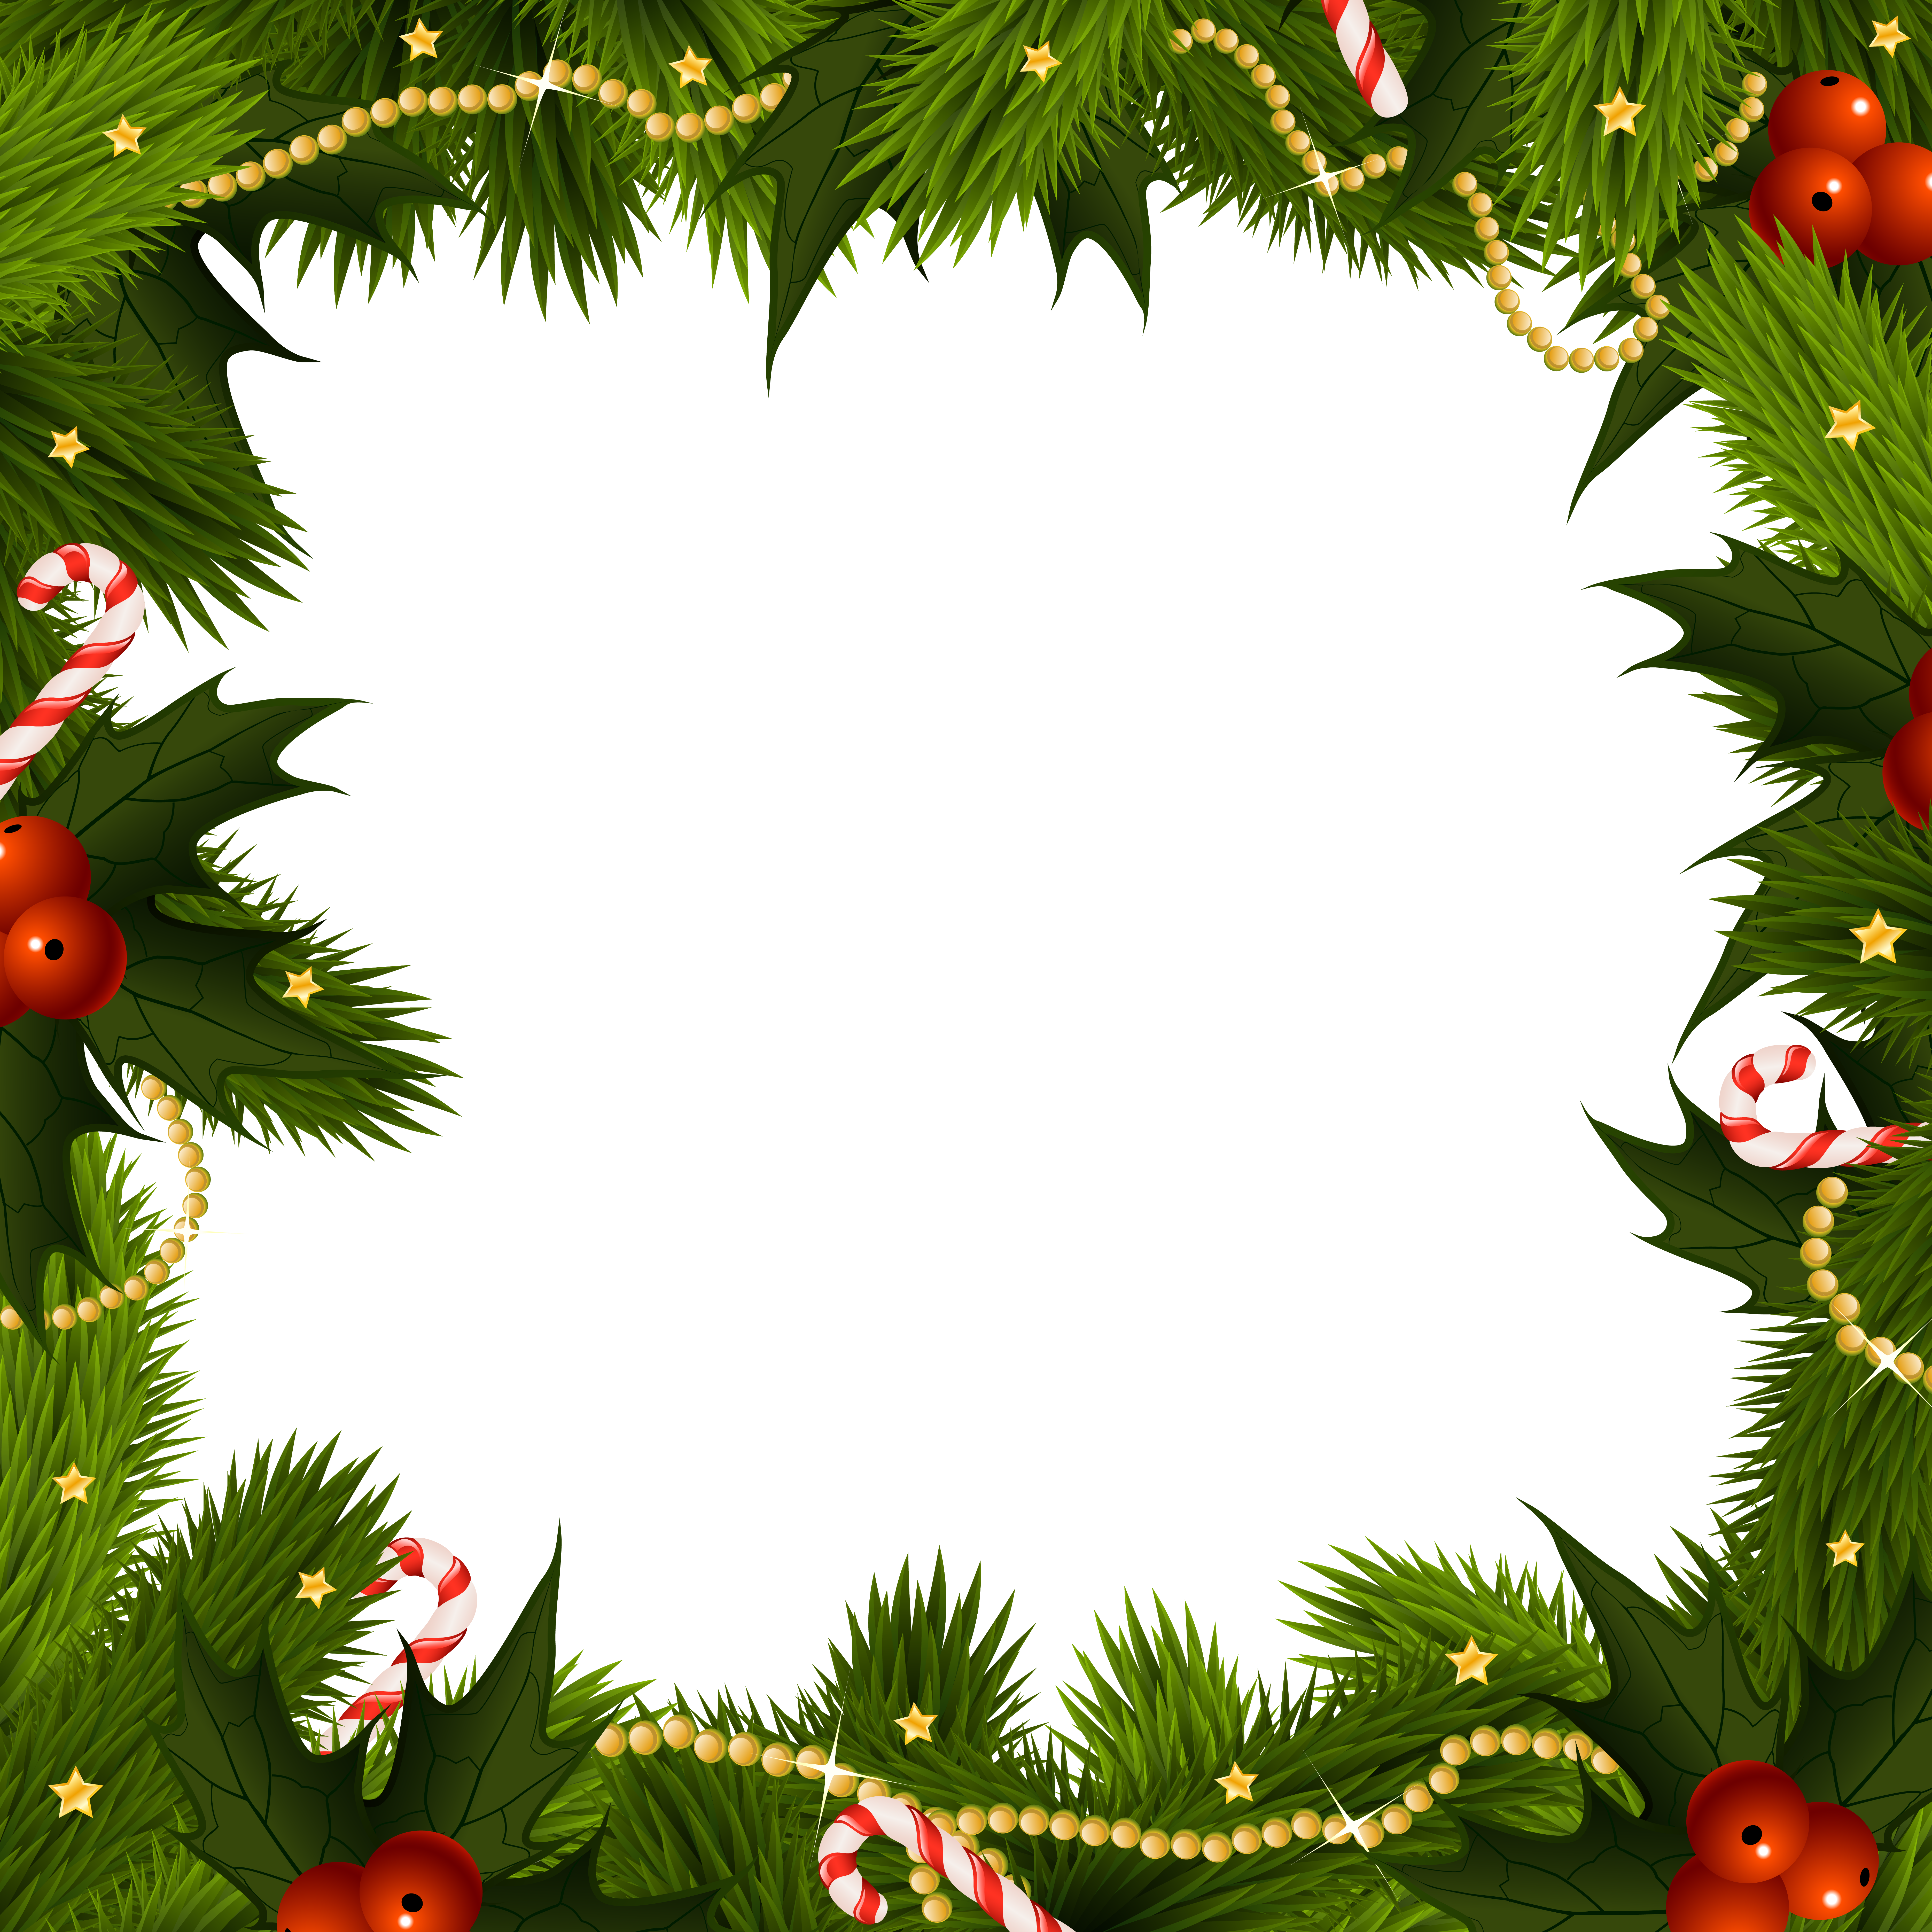 Transparent border frame gallery. Free christmas photo frames and borders png jpg free stock